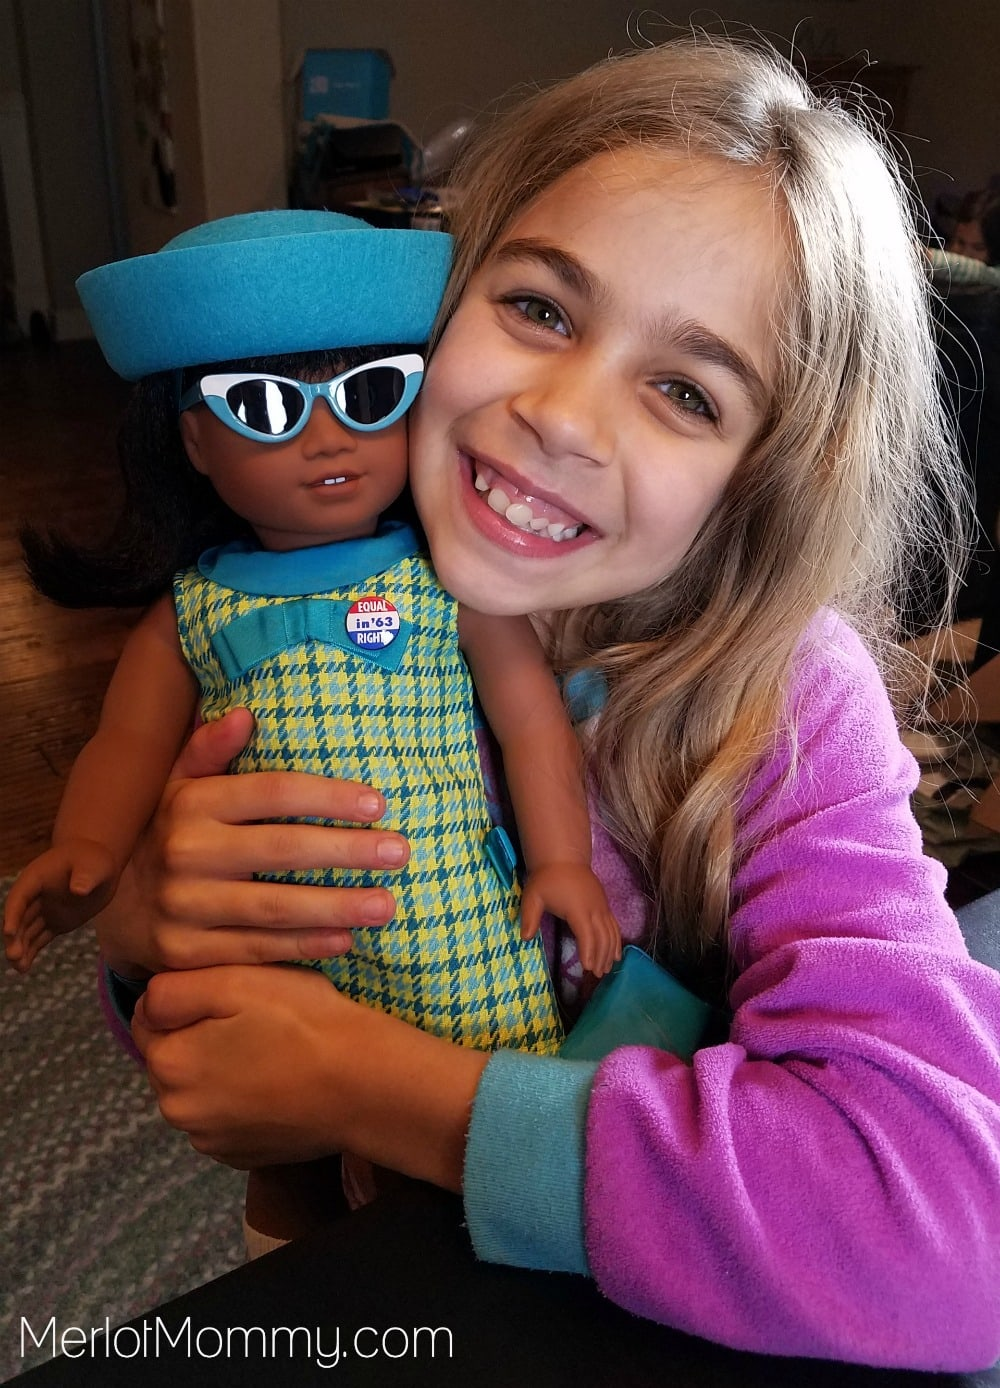 American Girl's Newest BeForever Character Melody is the Perfect Holiday Gift